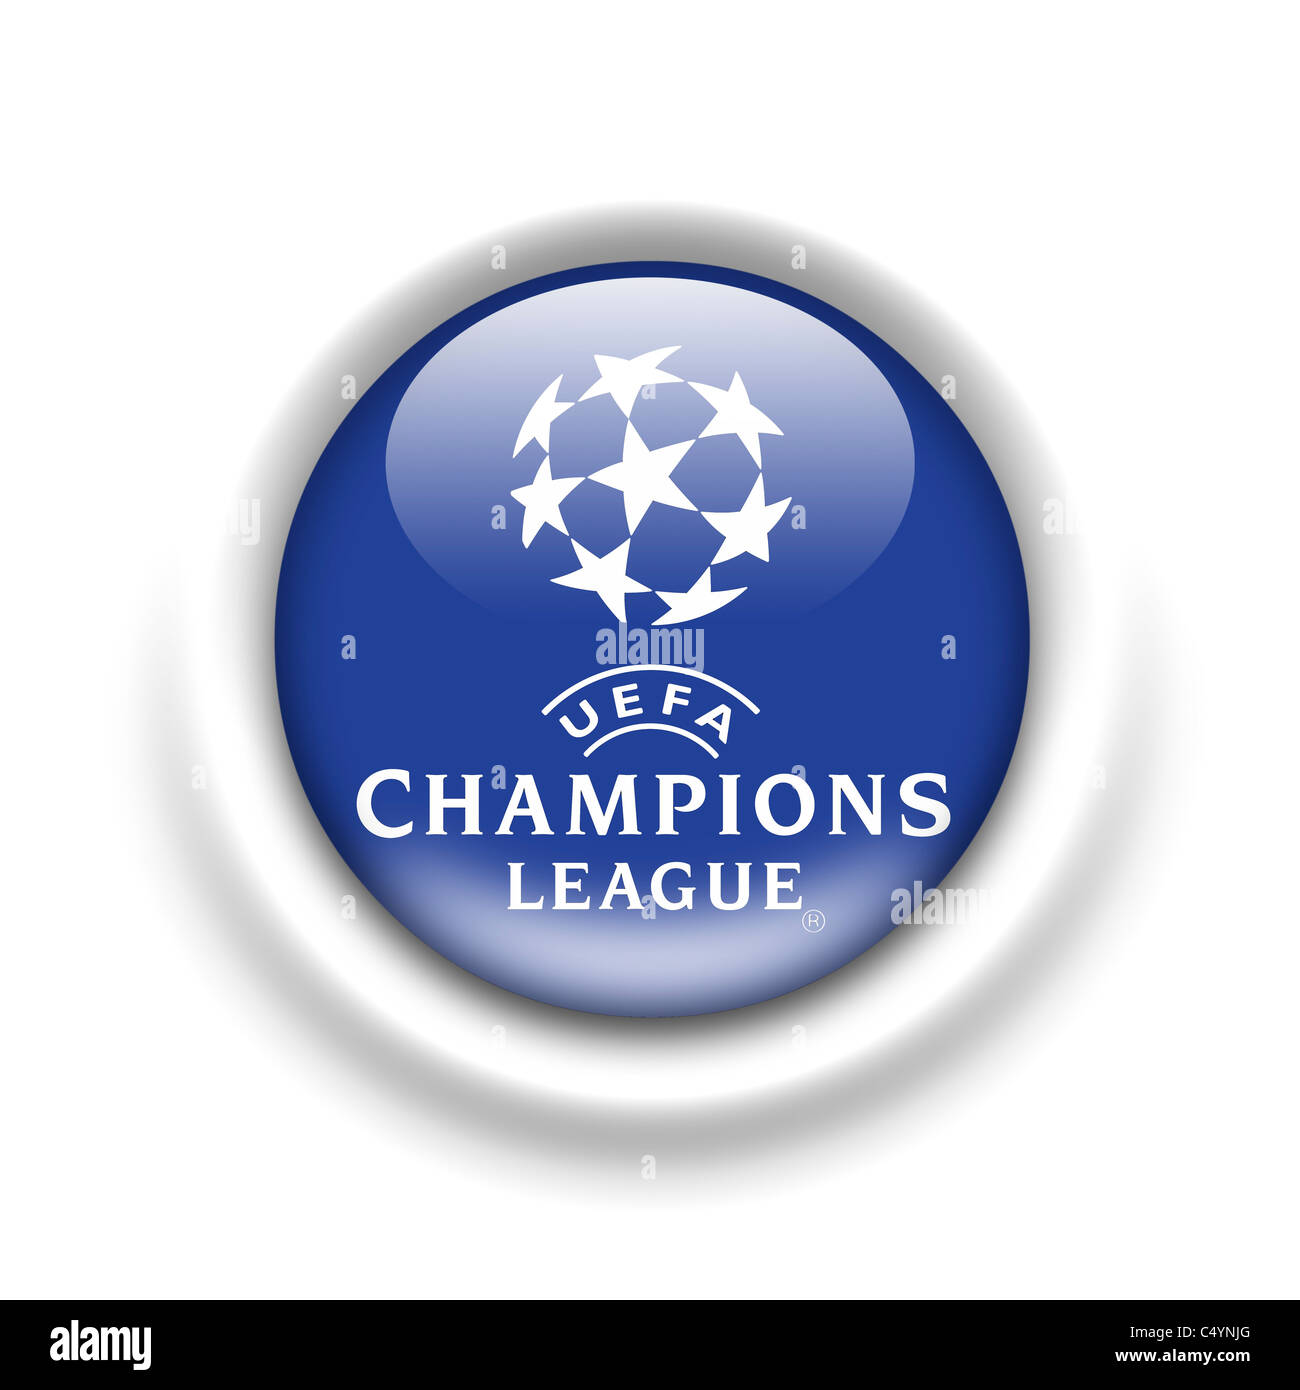 champions league logo cut out stock images pictures alamy https www alamy com stock photo champions league uefa logo flag symbol icon 37489048 html